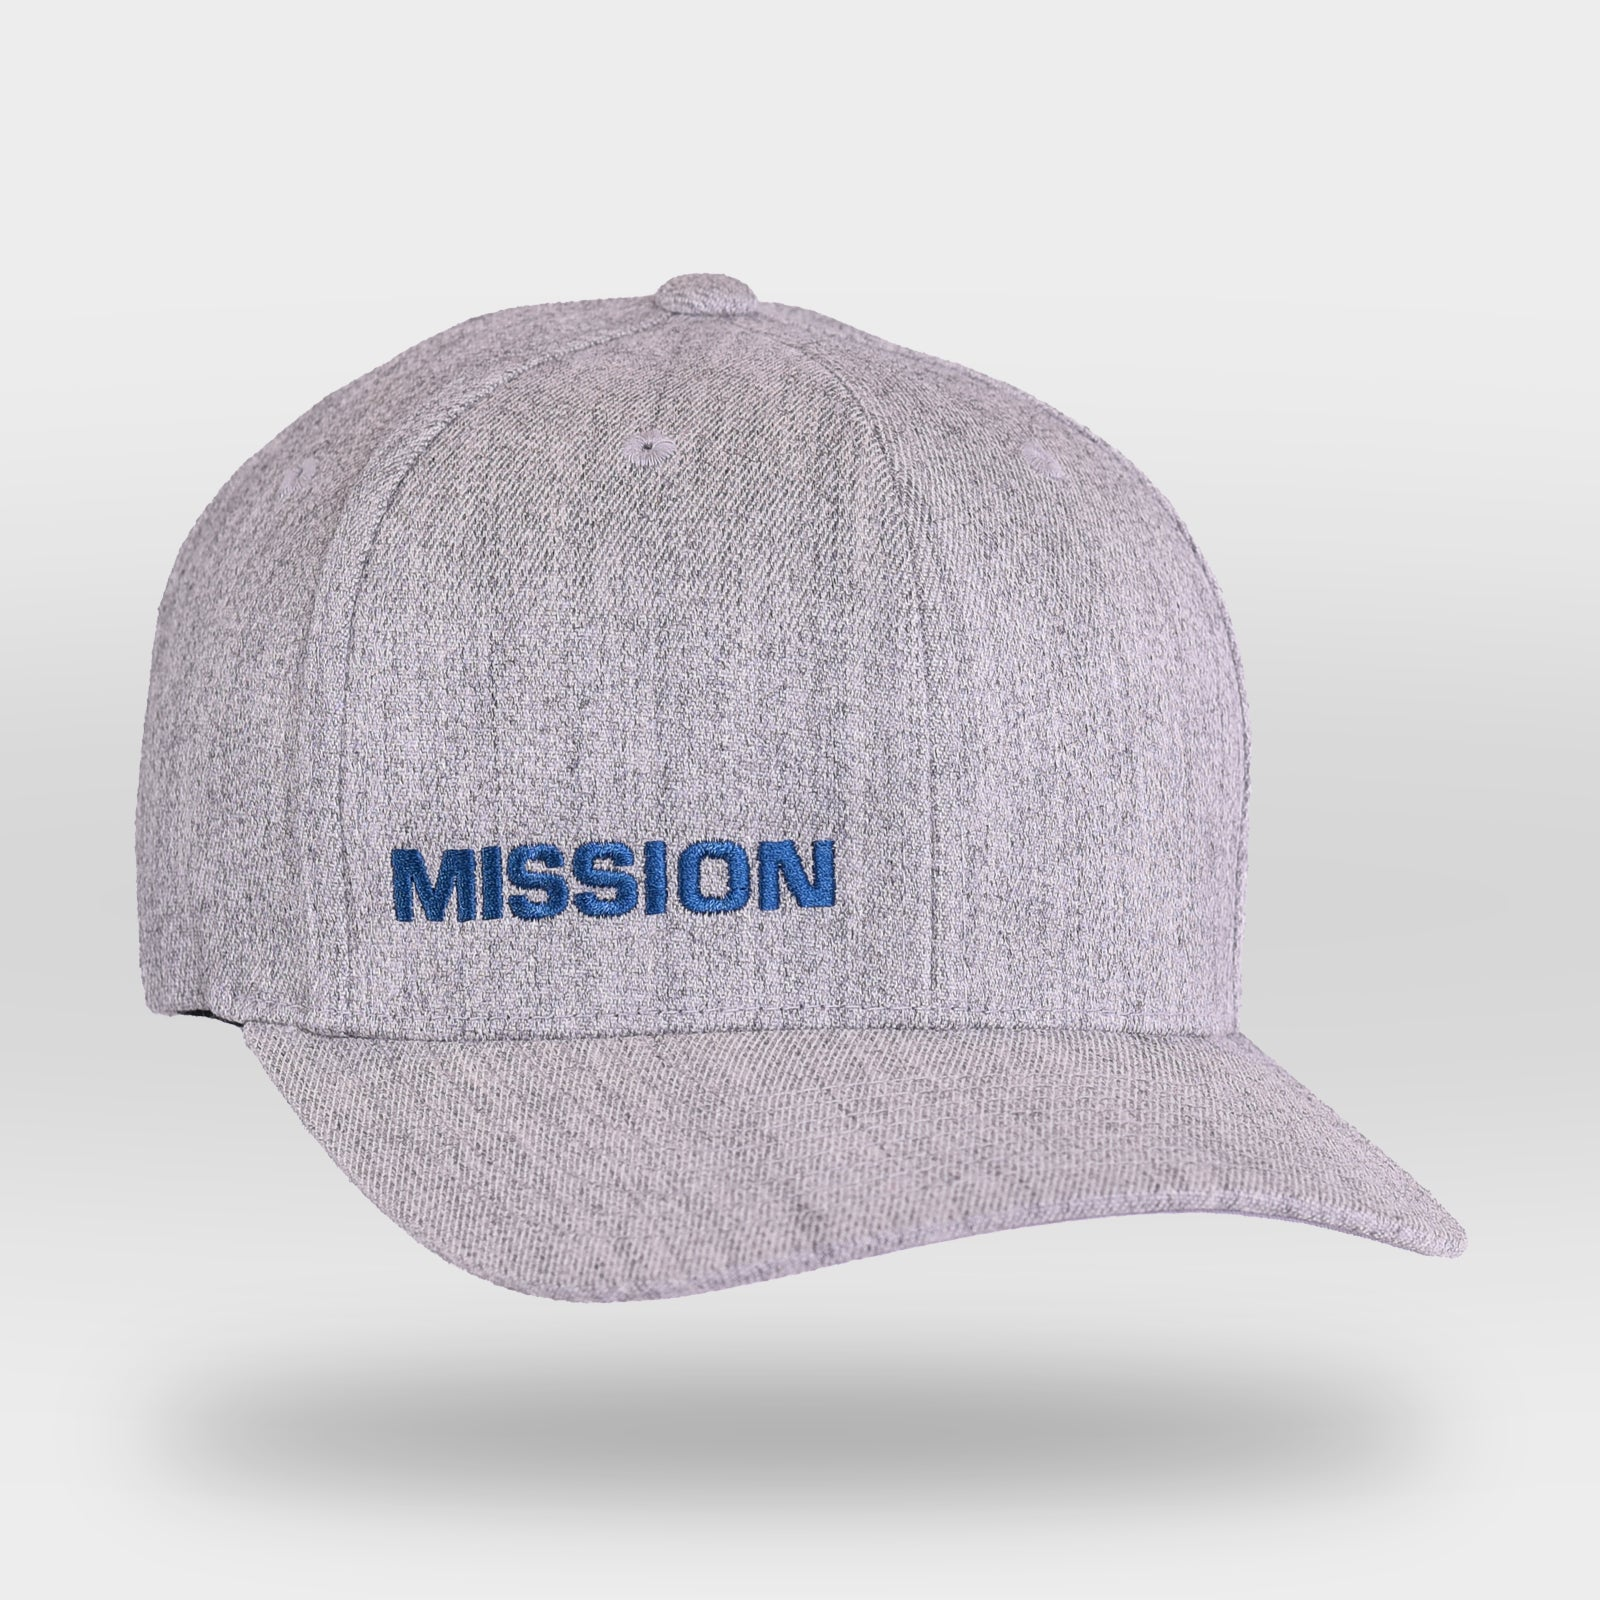 MISSION :: Flexfit Hats :: MISSION Boat Gear